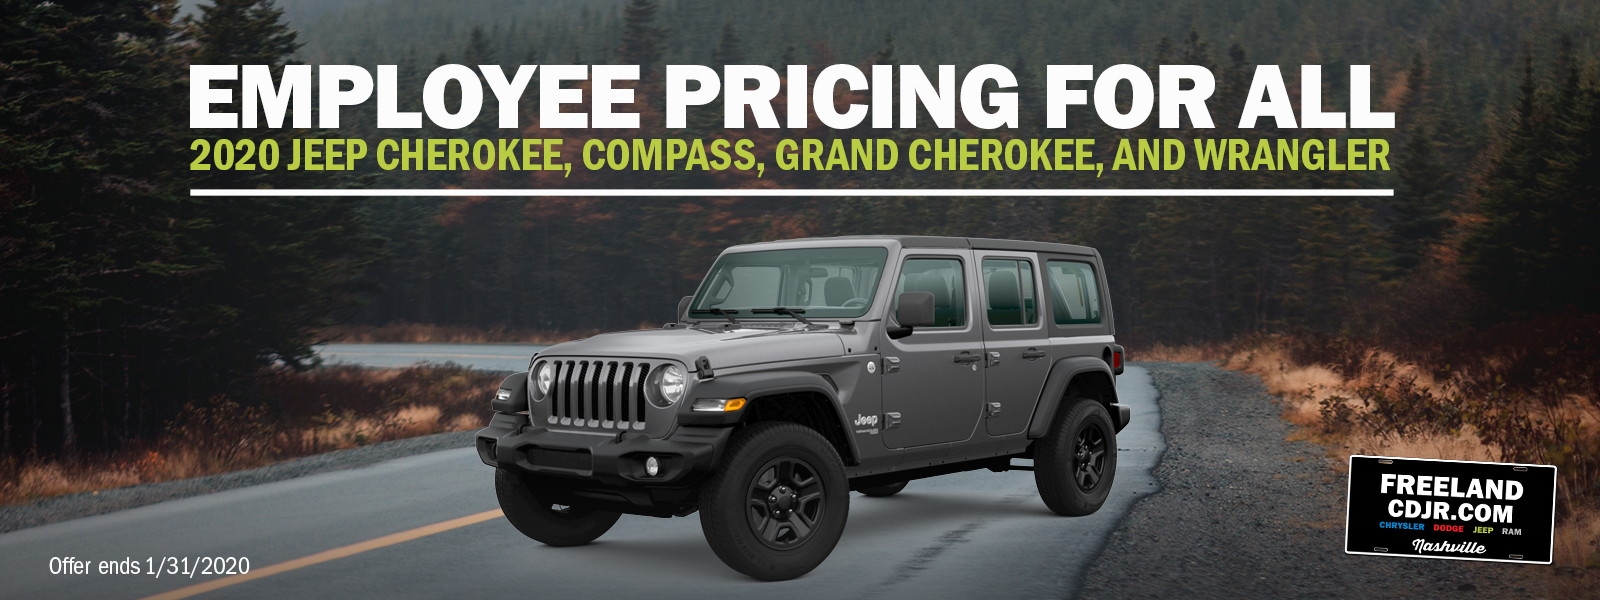 2020 Jeep Employee Pricing